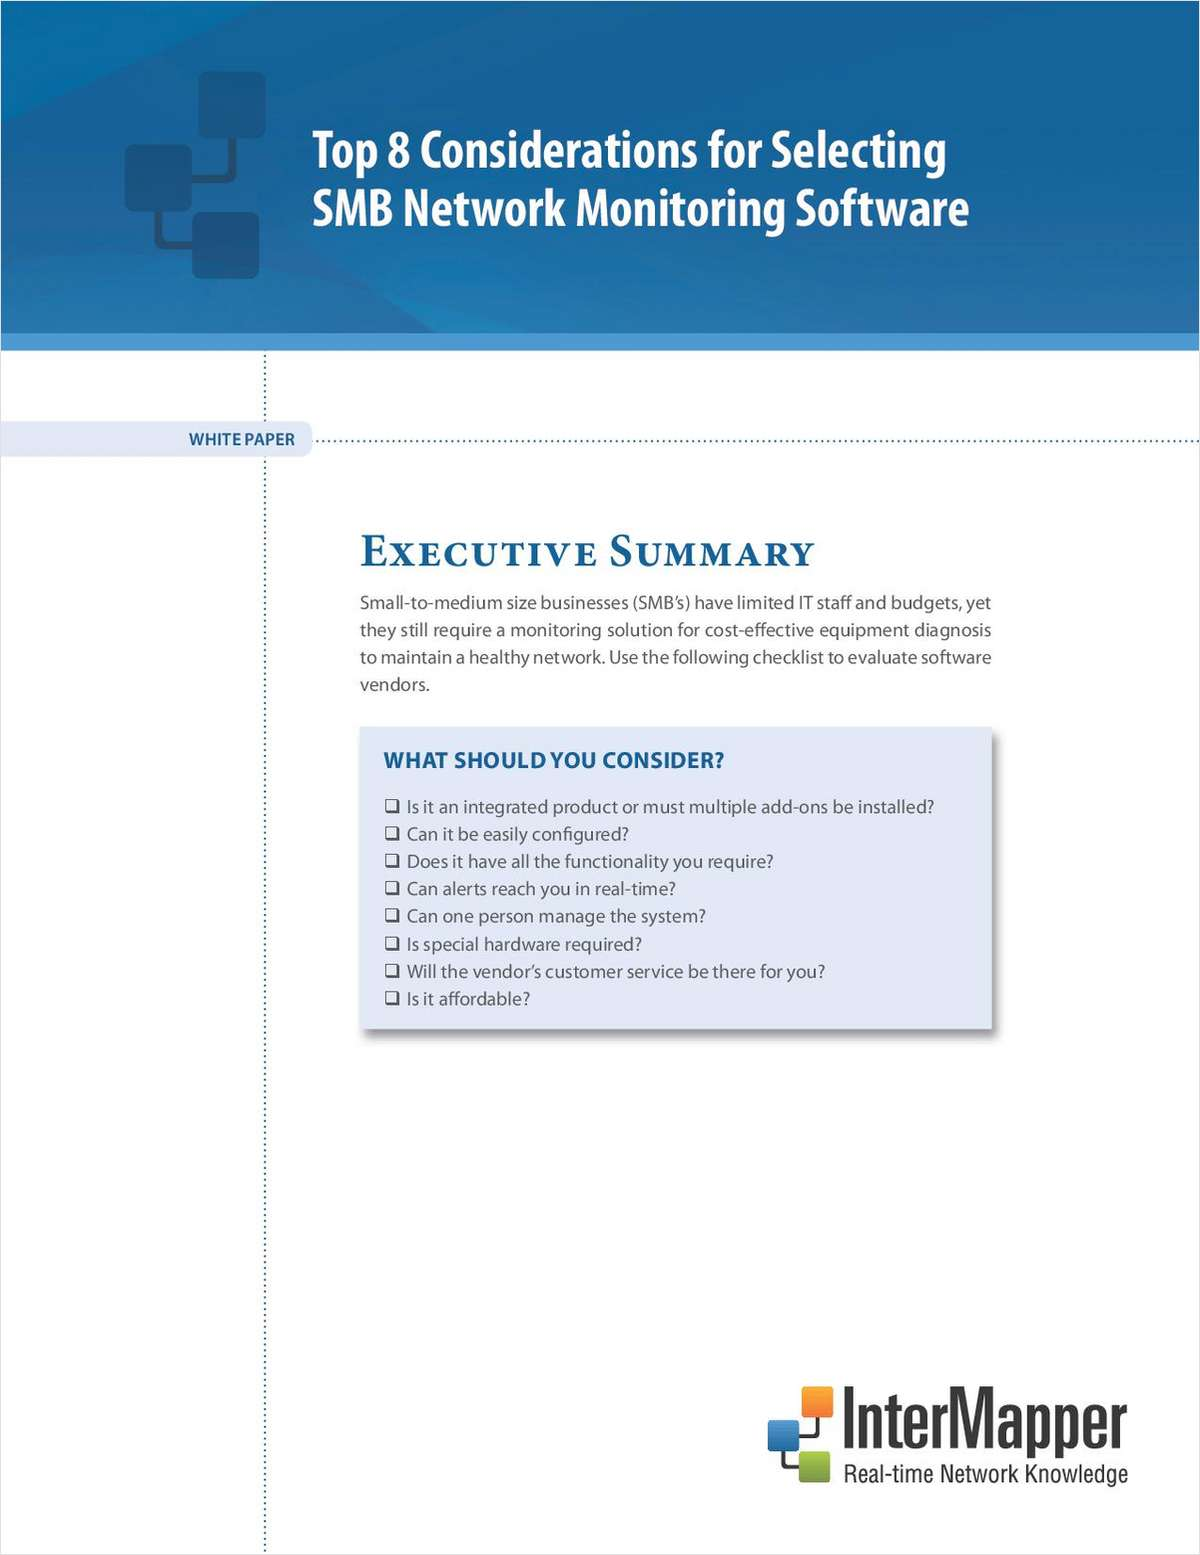 Top 8 Considerations for Selecting SMB Network Monitoring Software